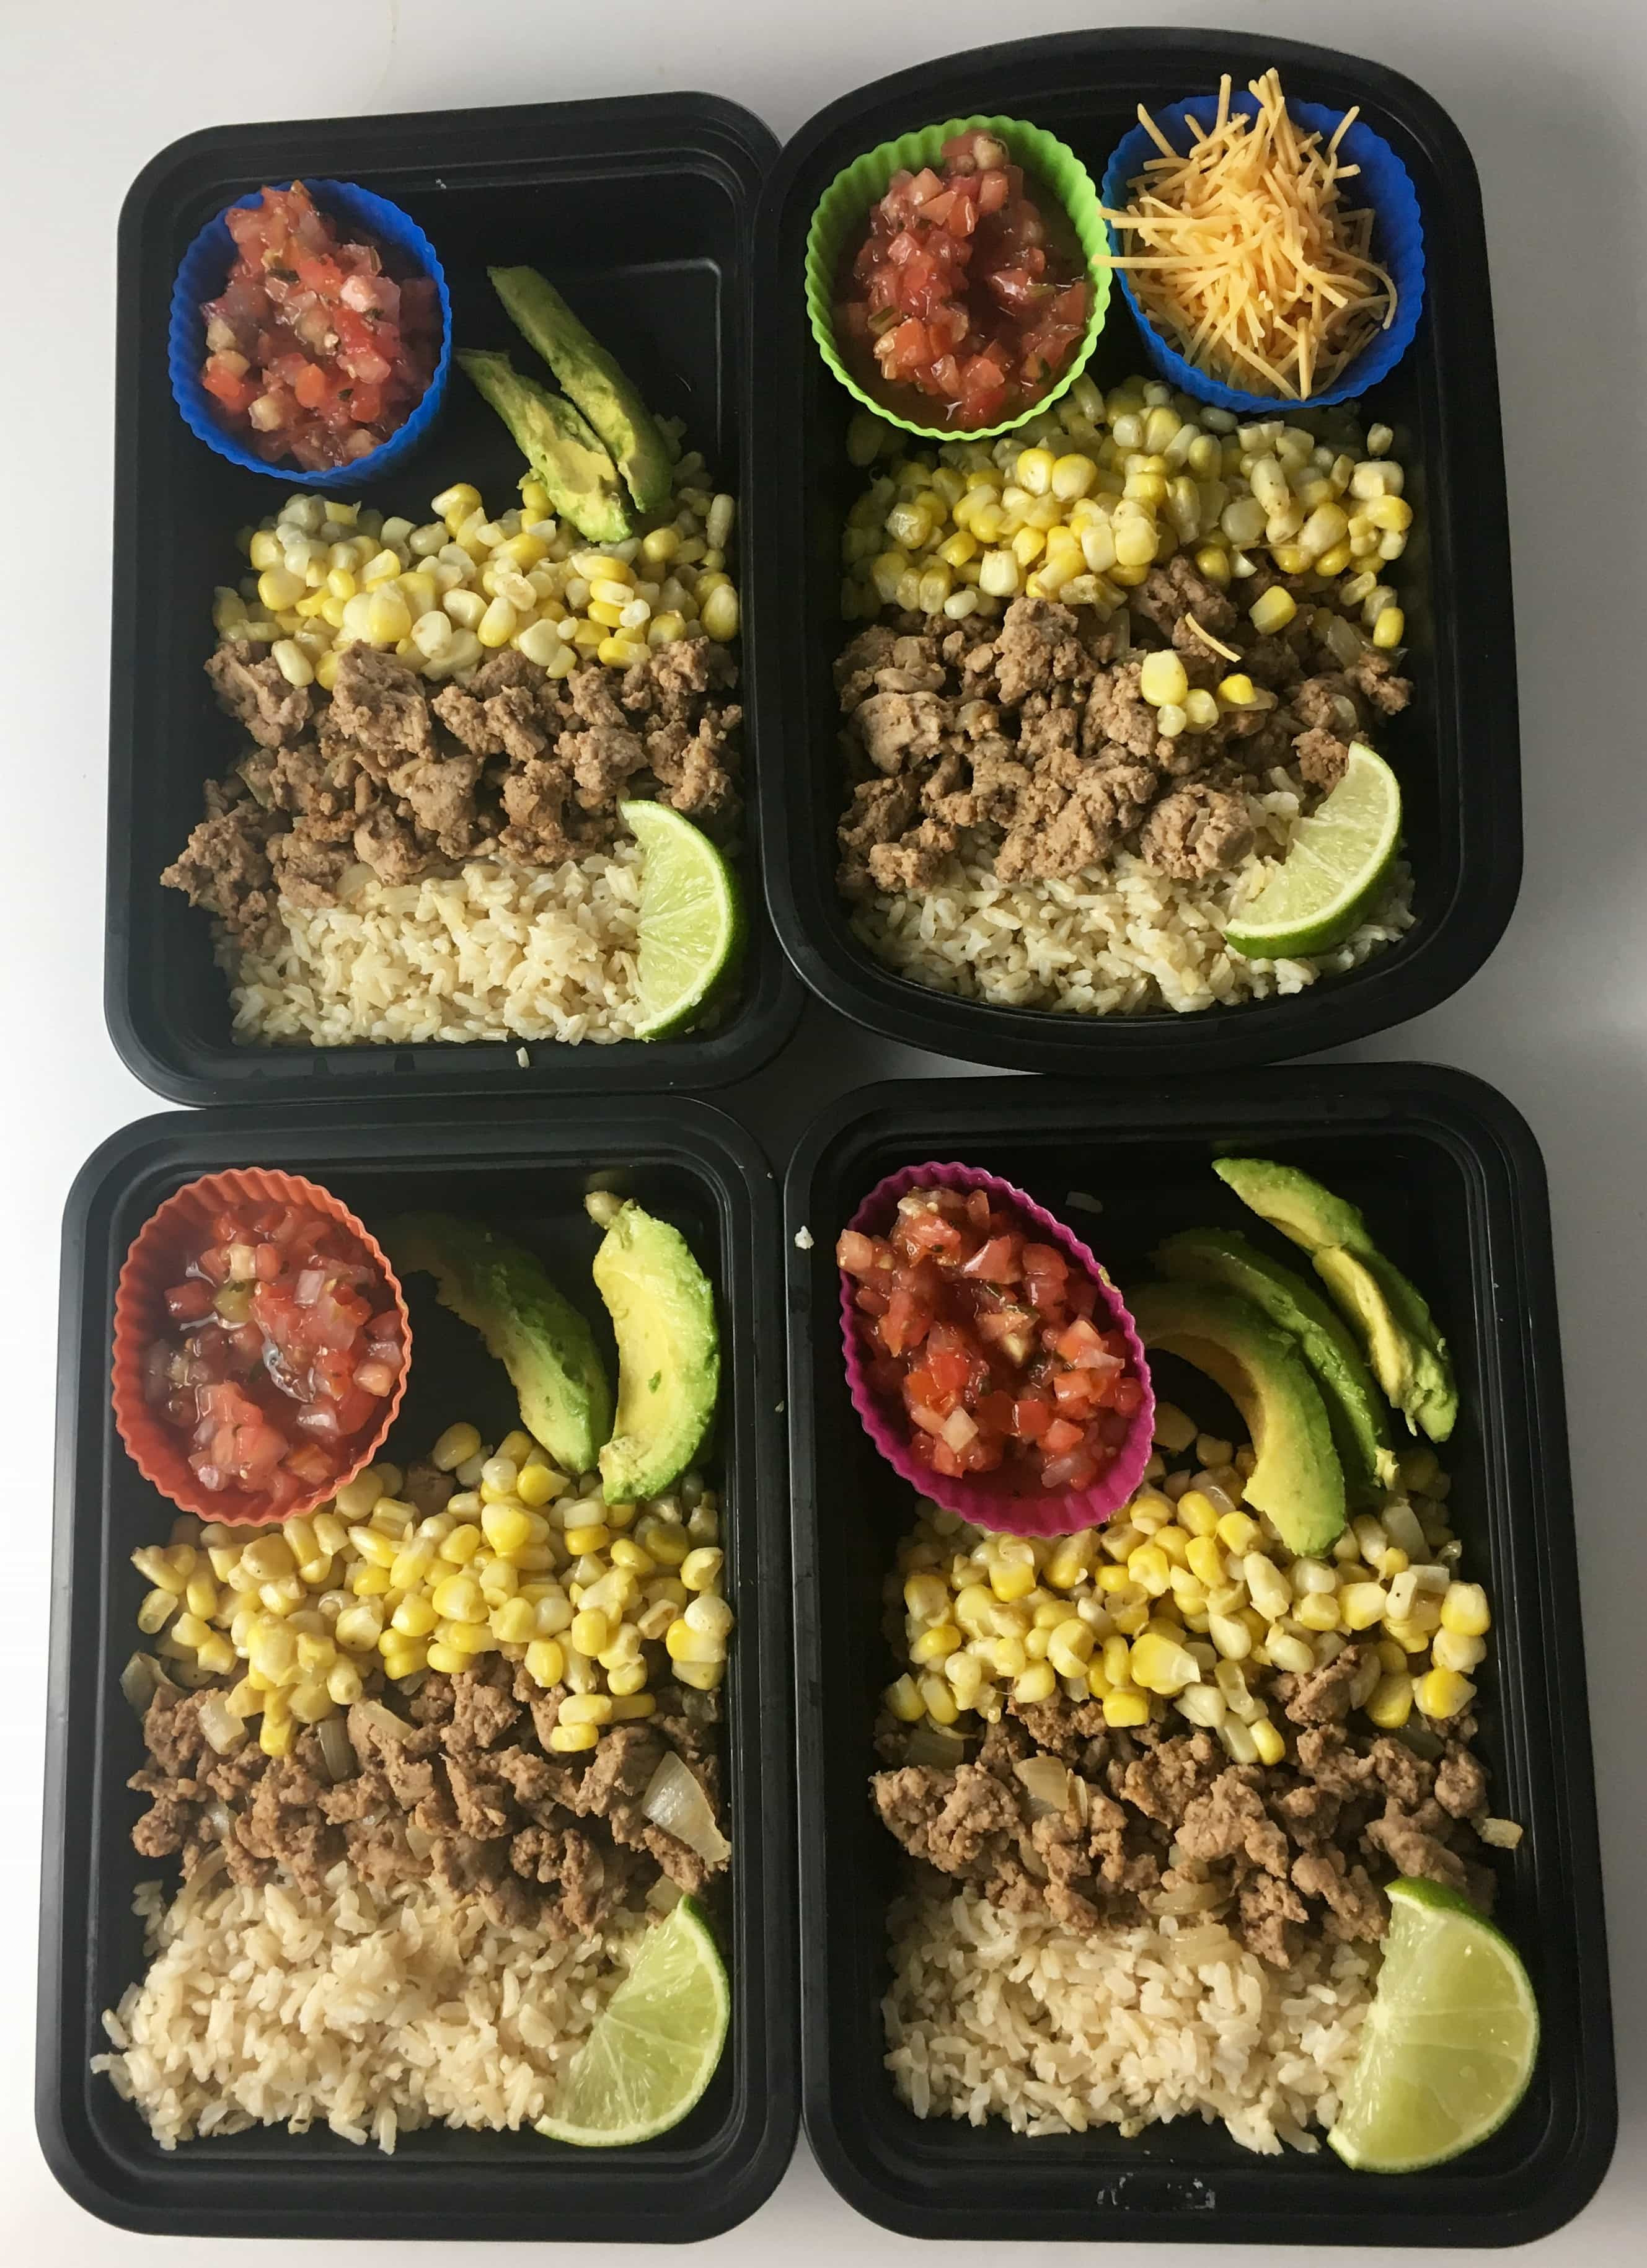 Ground Turkey Meal Prep  Ground Turkey Burrito Bowl for Meal Prep Easy Living Today